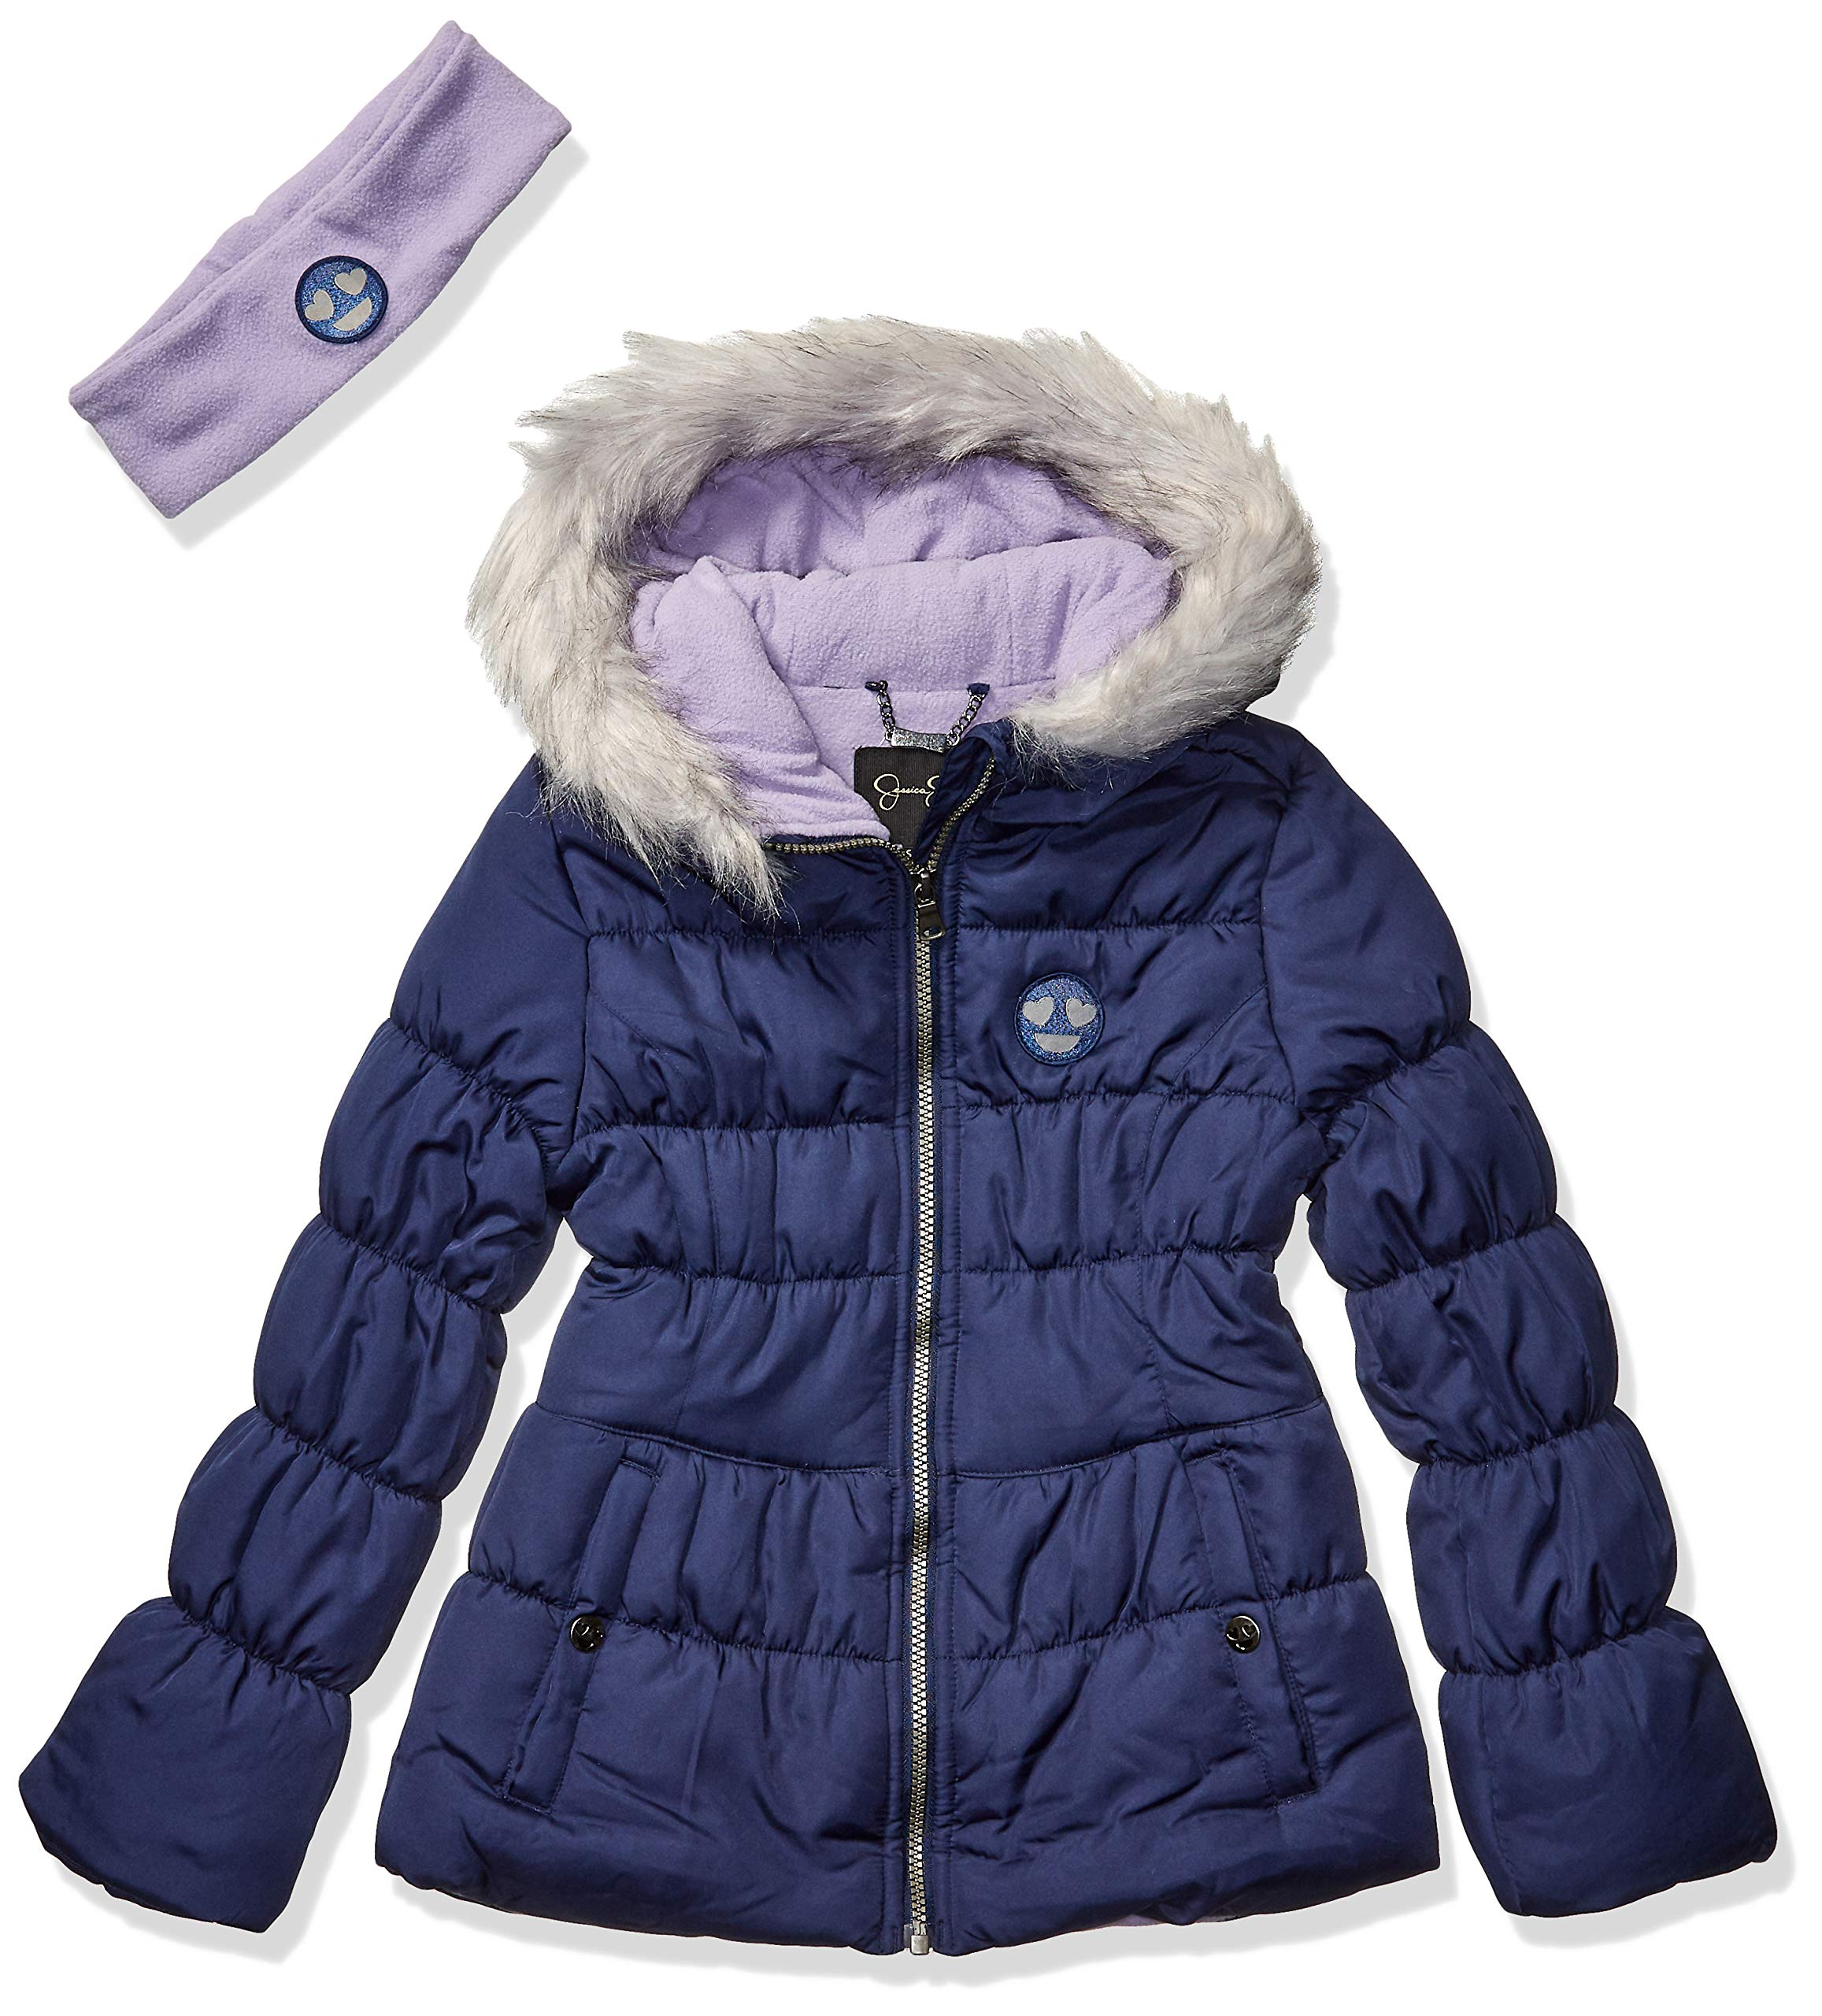 Jessica Simpson Girls' Big Expedition Parka, Navy, 10/12 by Jessica Simpson